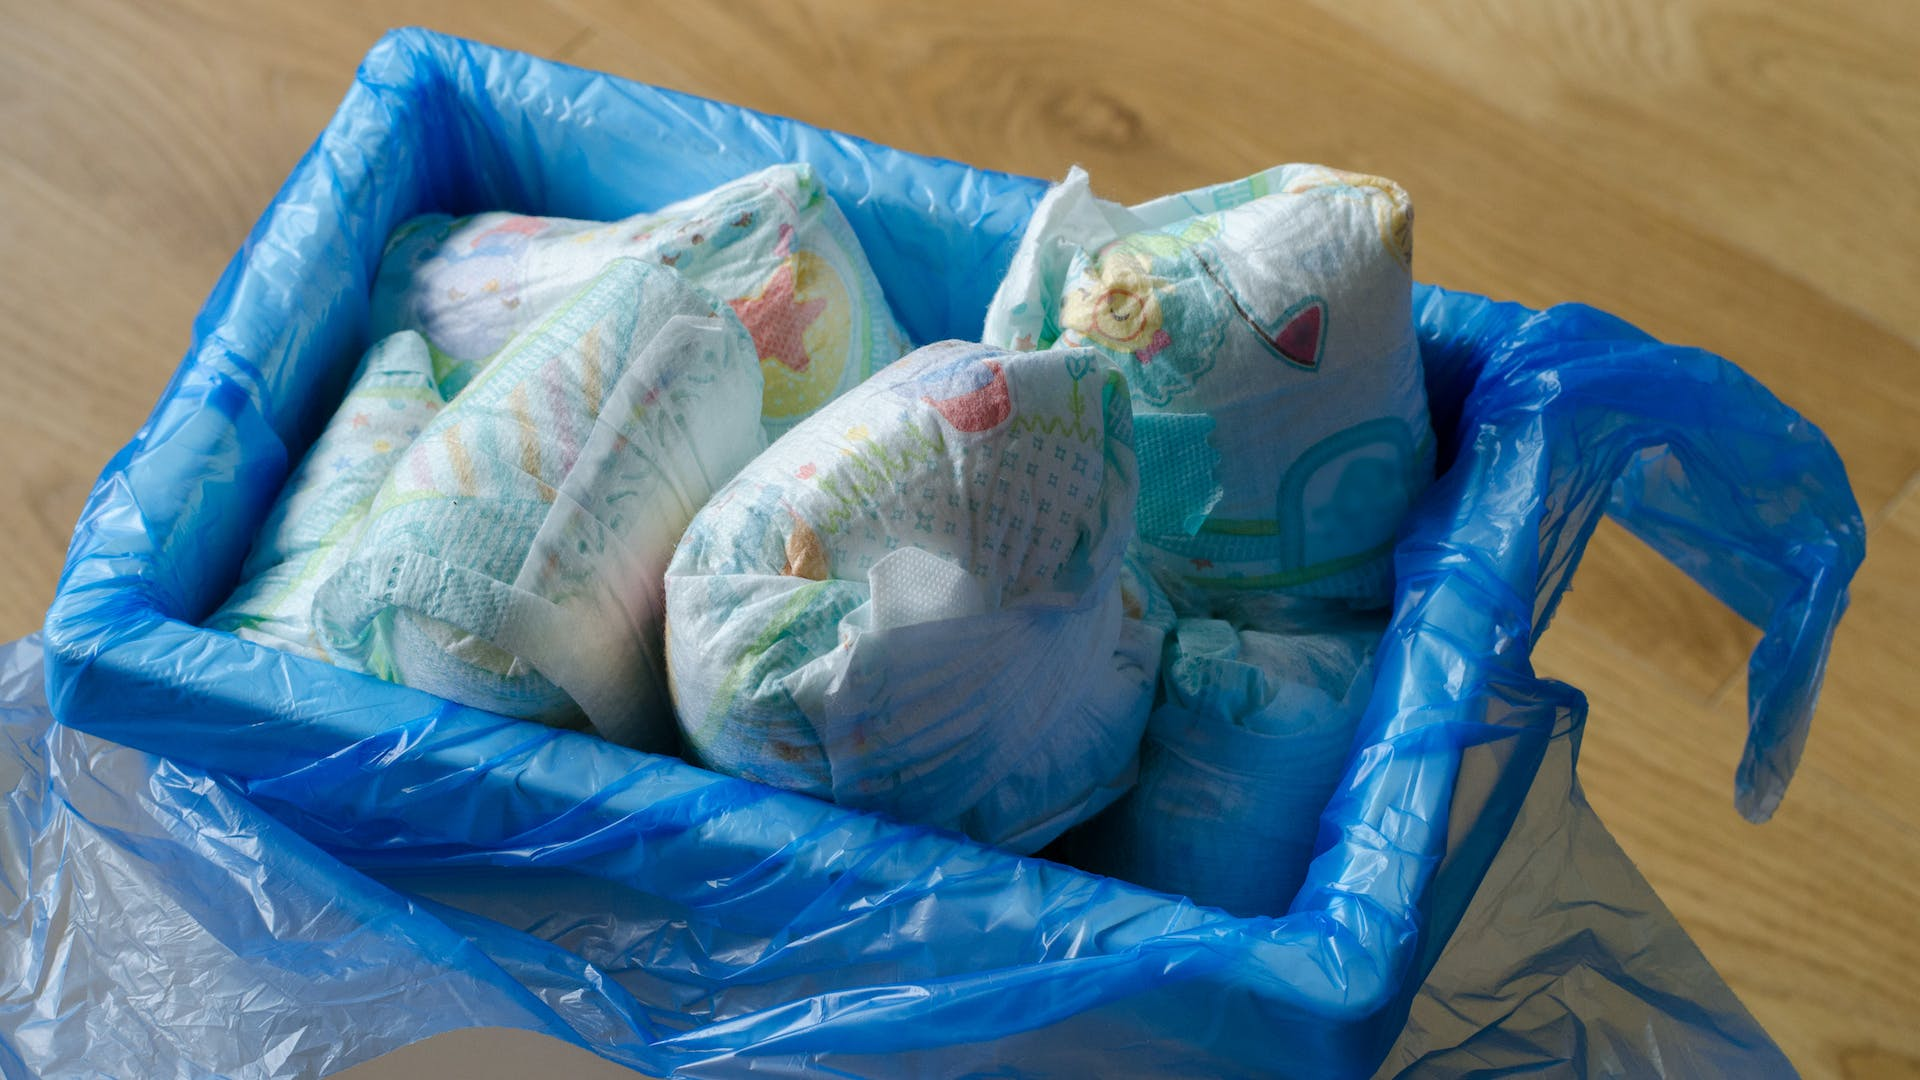 A bin full of dirty nappies